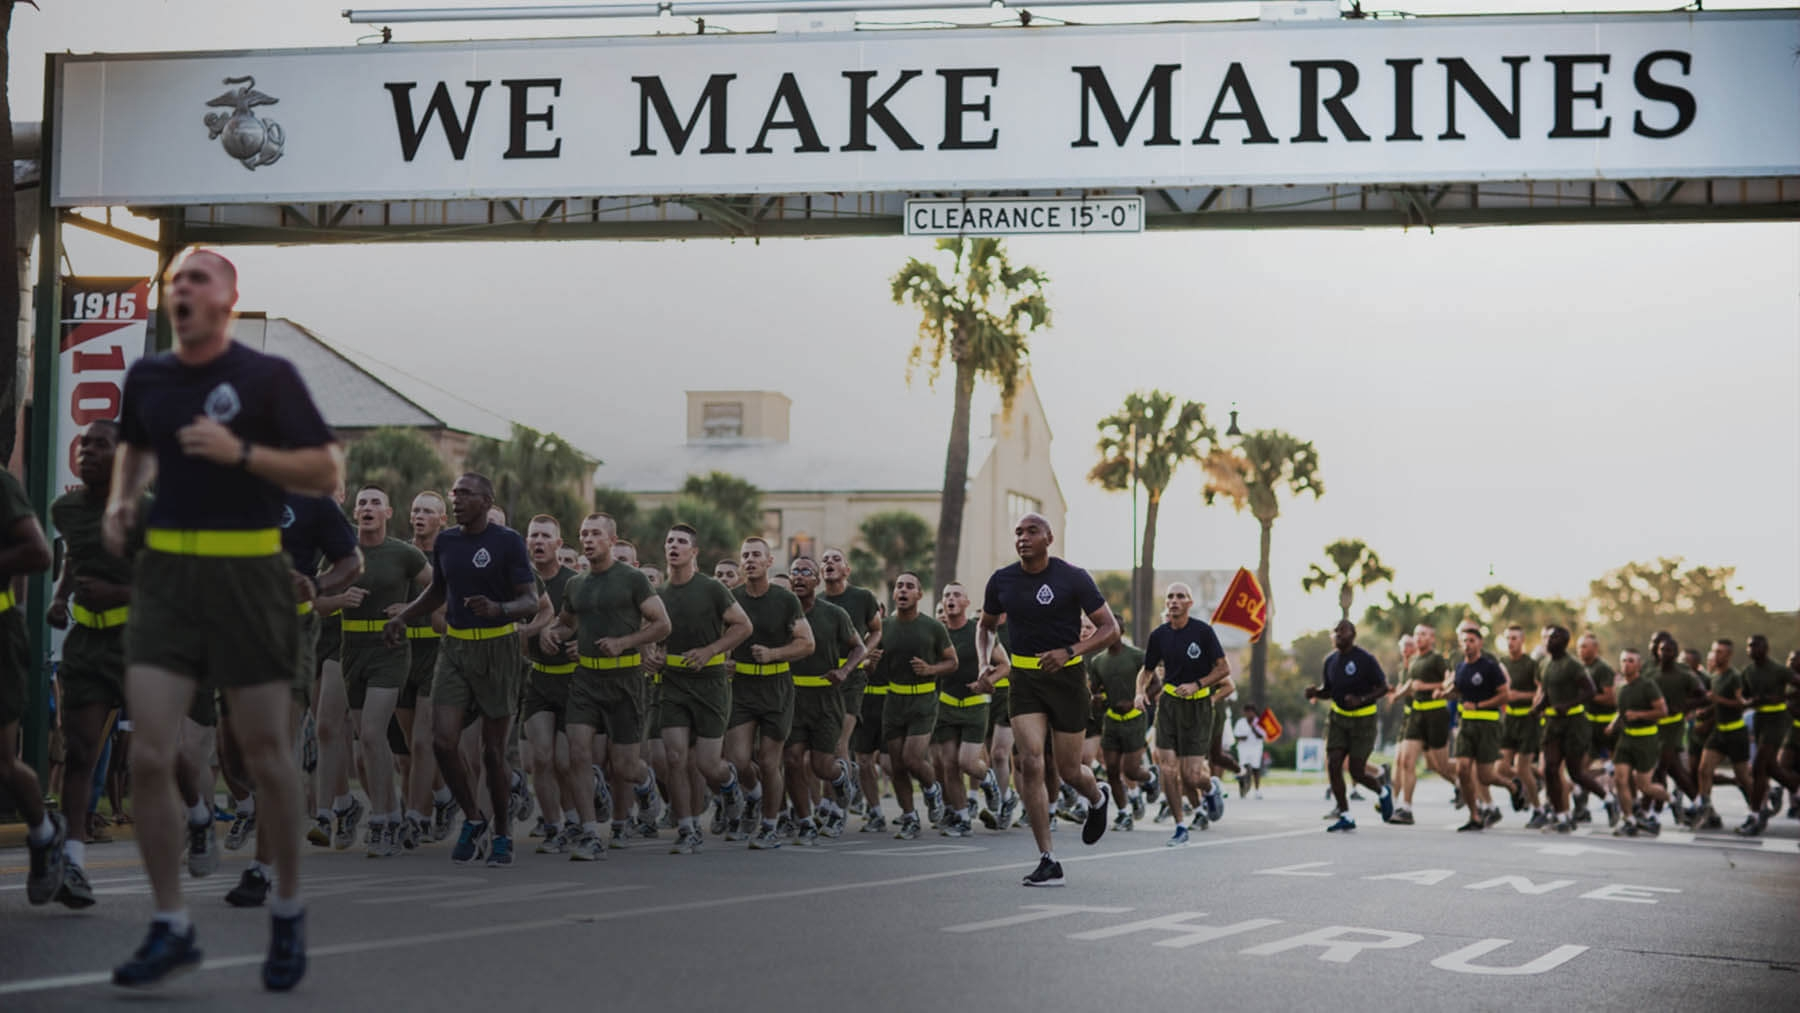 A large group of Marines run cadence together.